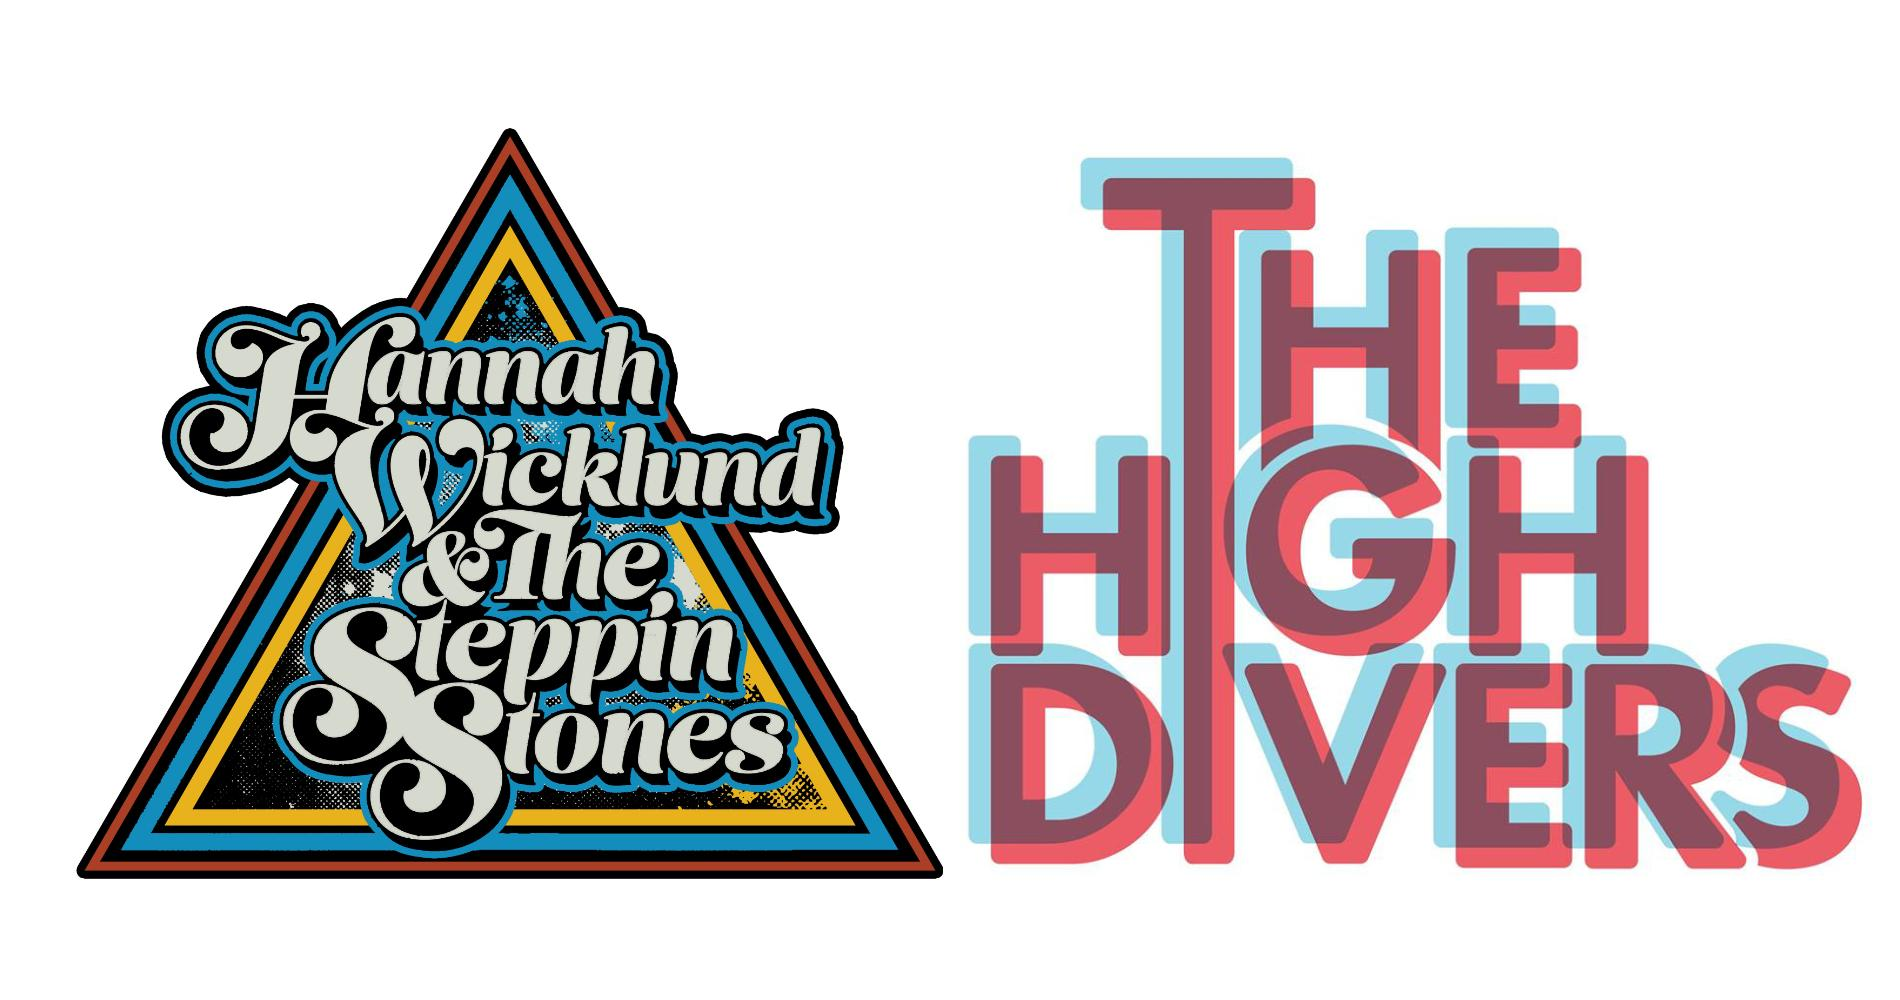 Sibling Rivalry Tour featuring Hannah Wicklund & The Steppin Stones and The High Divers